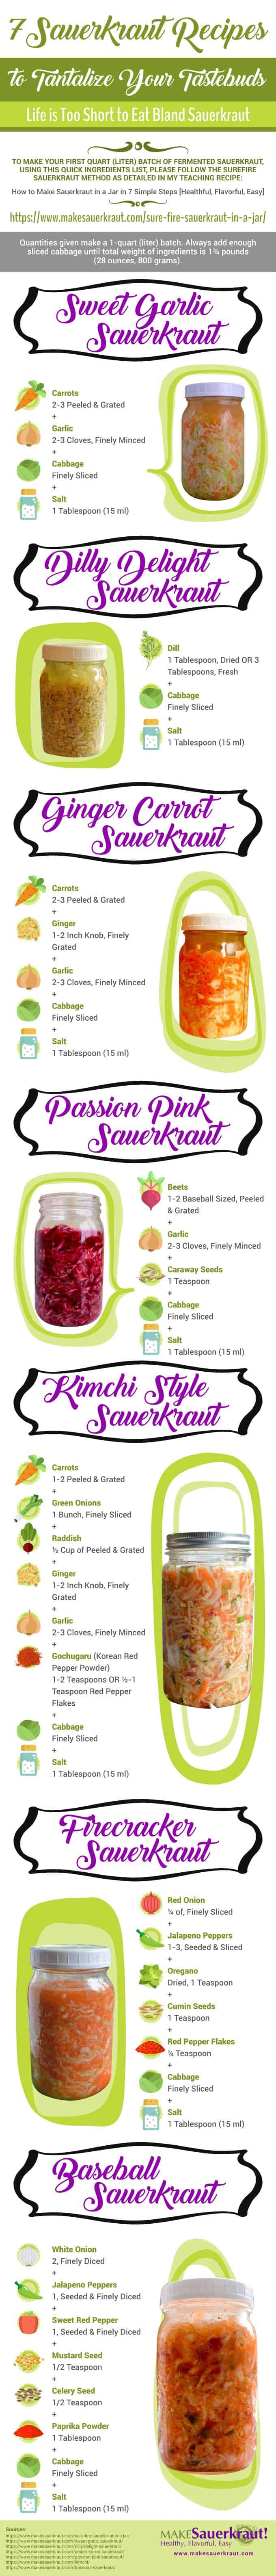 7 Sauerkraut Recipes on one quick reference sheet. Post on your fridge. | makesauerkraut.com